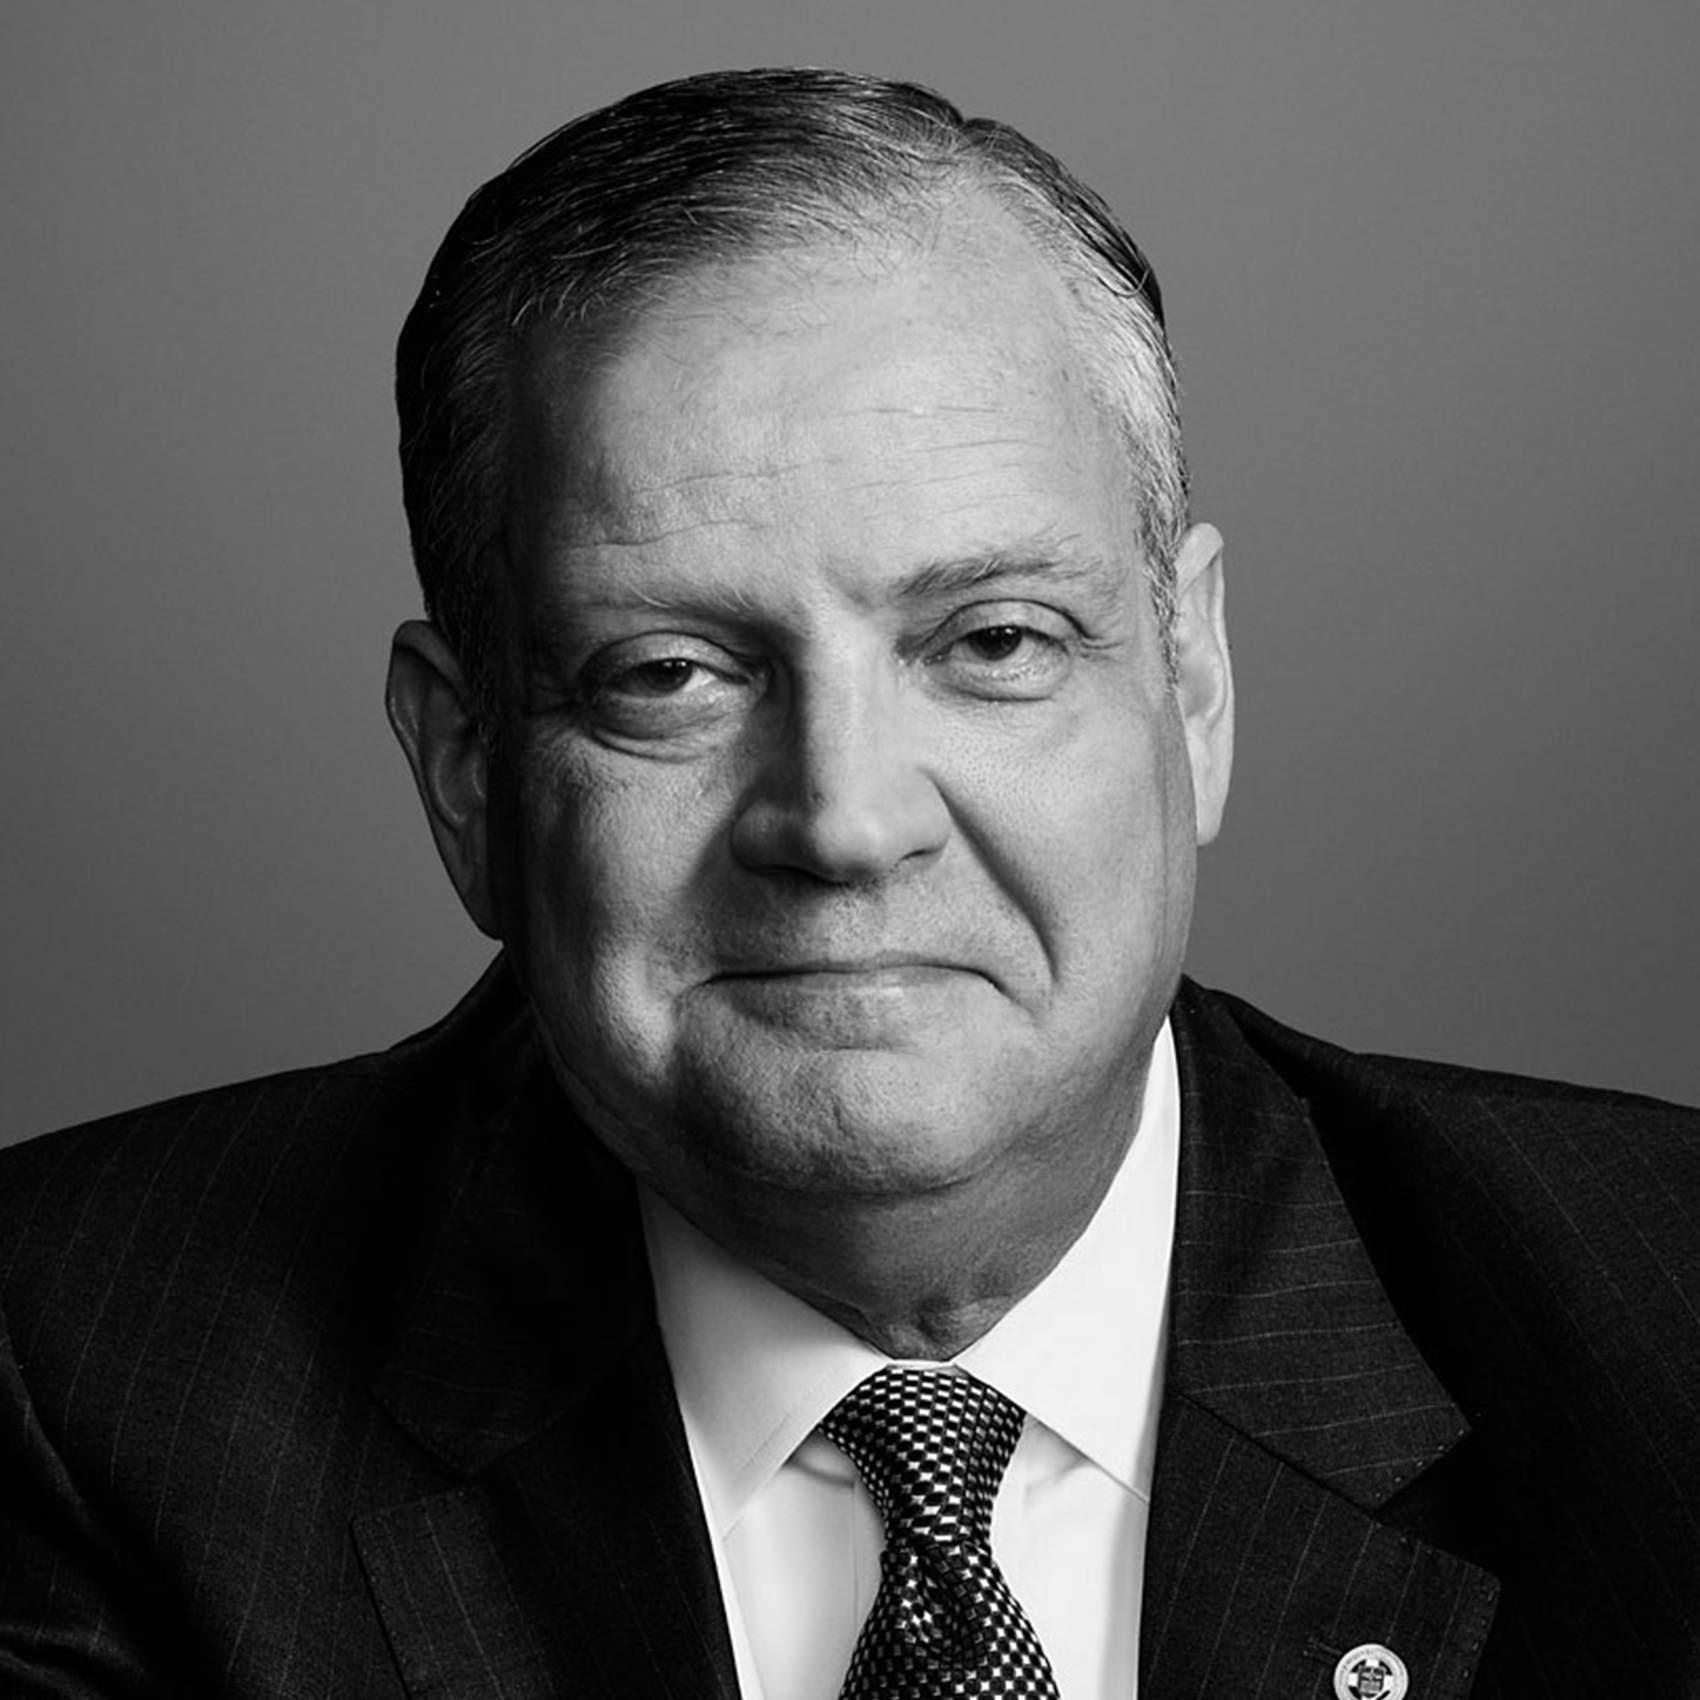 Dr. R. Albert MOHLER - President of The Southern Baptist Theological Seminary in Louisville, KY